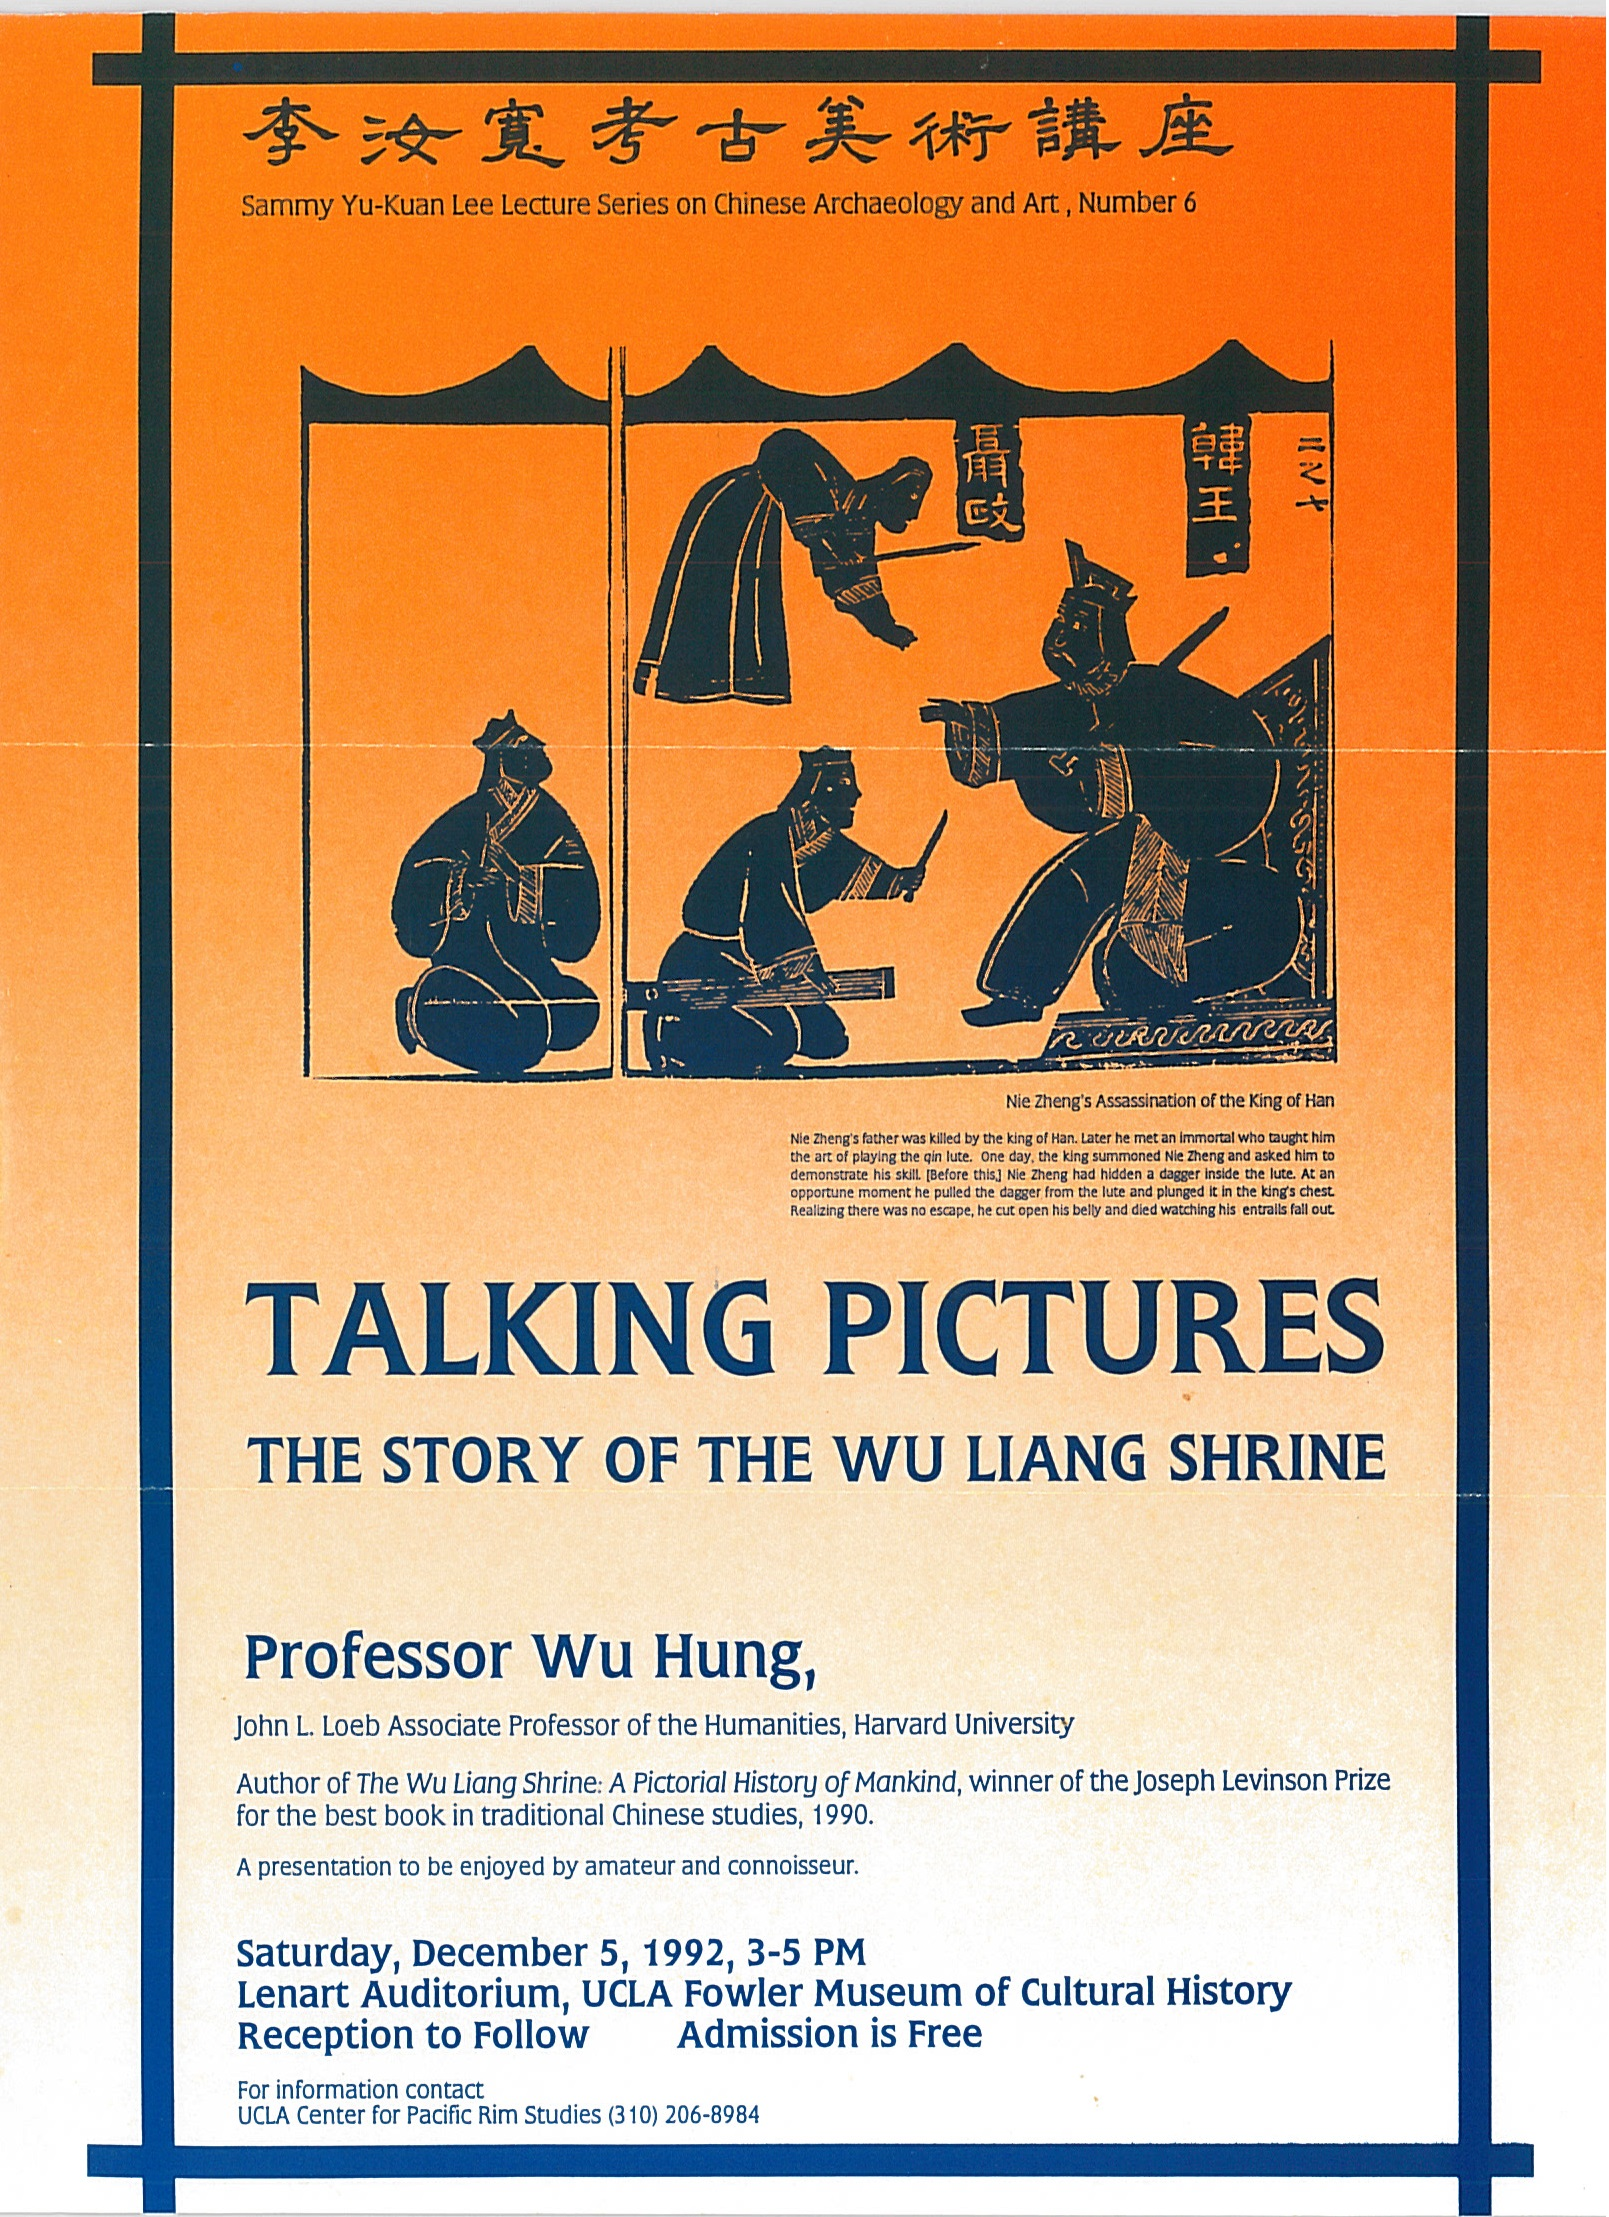 Talking Pictures: The Story of the Wu Liang Shrine